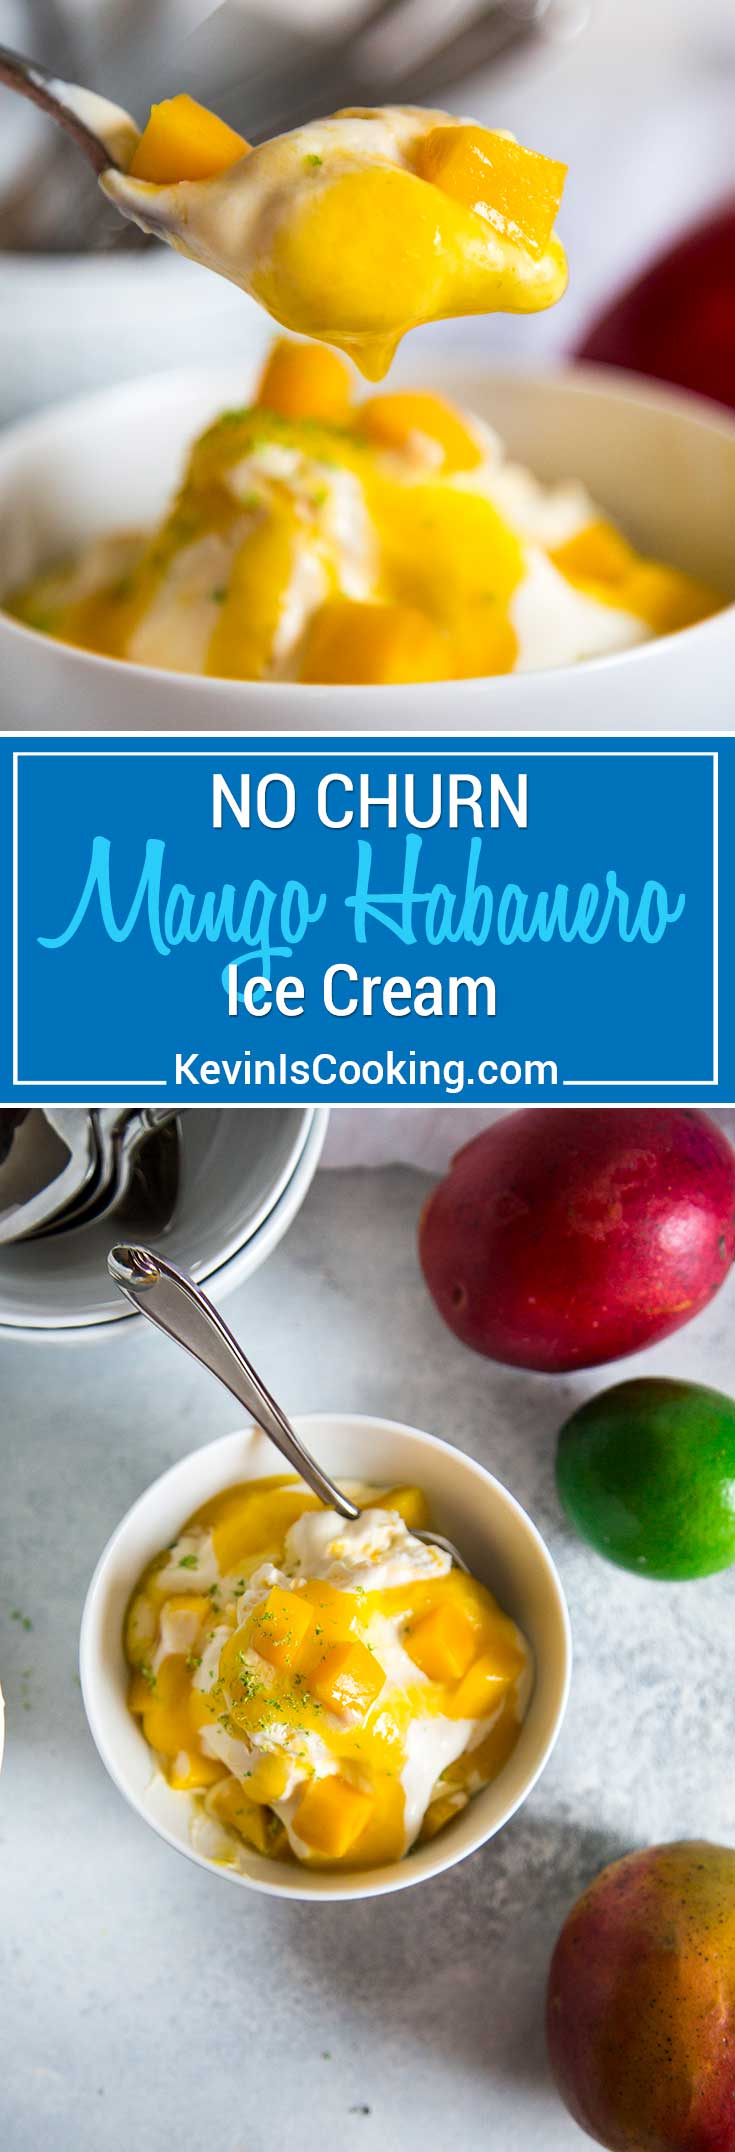 This No Churn Mango Ice Cream has a secret flavor weapon and it's Tabasco's Habanero Sauce, just one teaspoon, and it delivers the most wonderful accent. A must try!